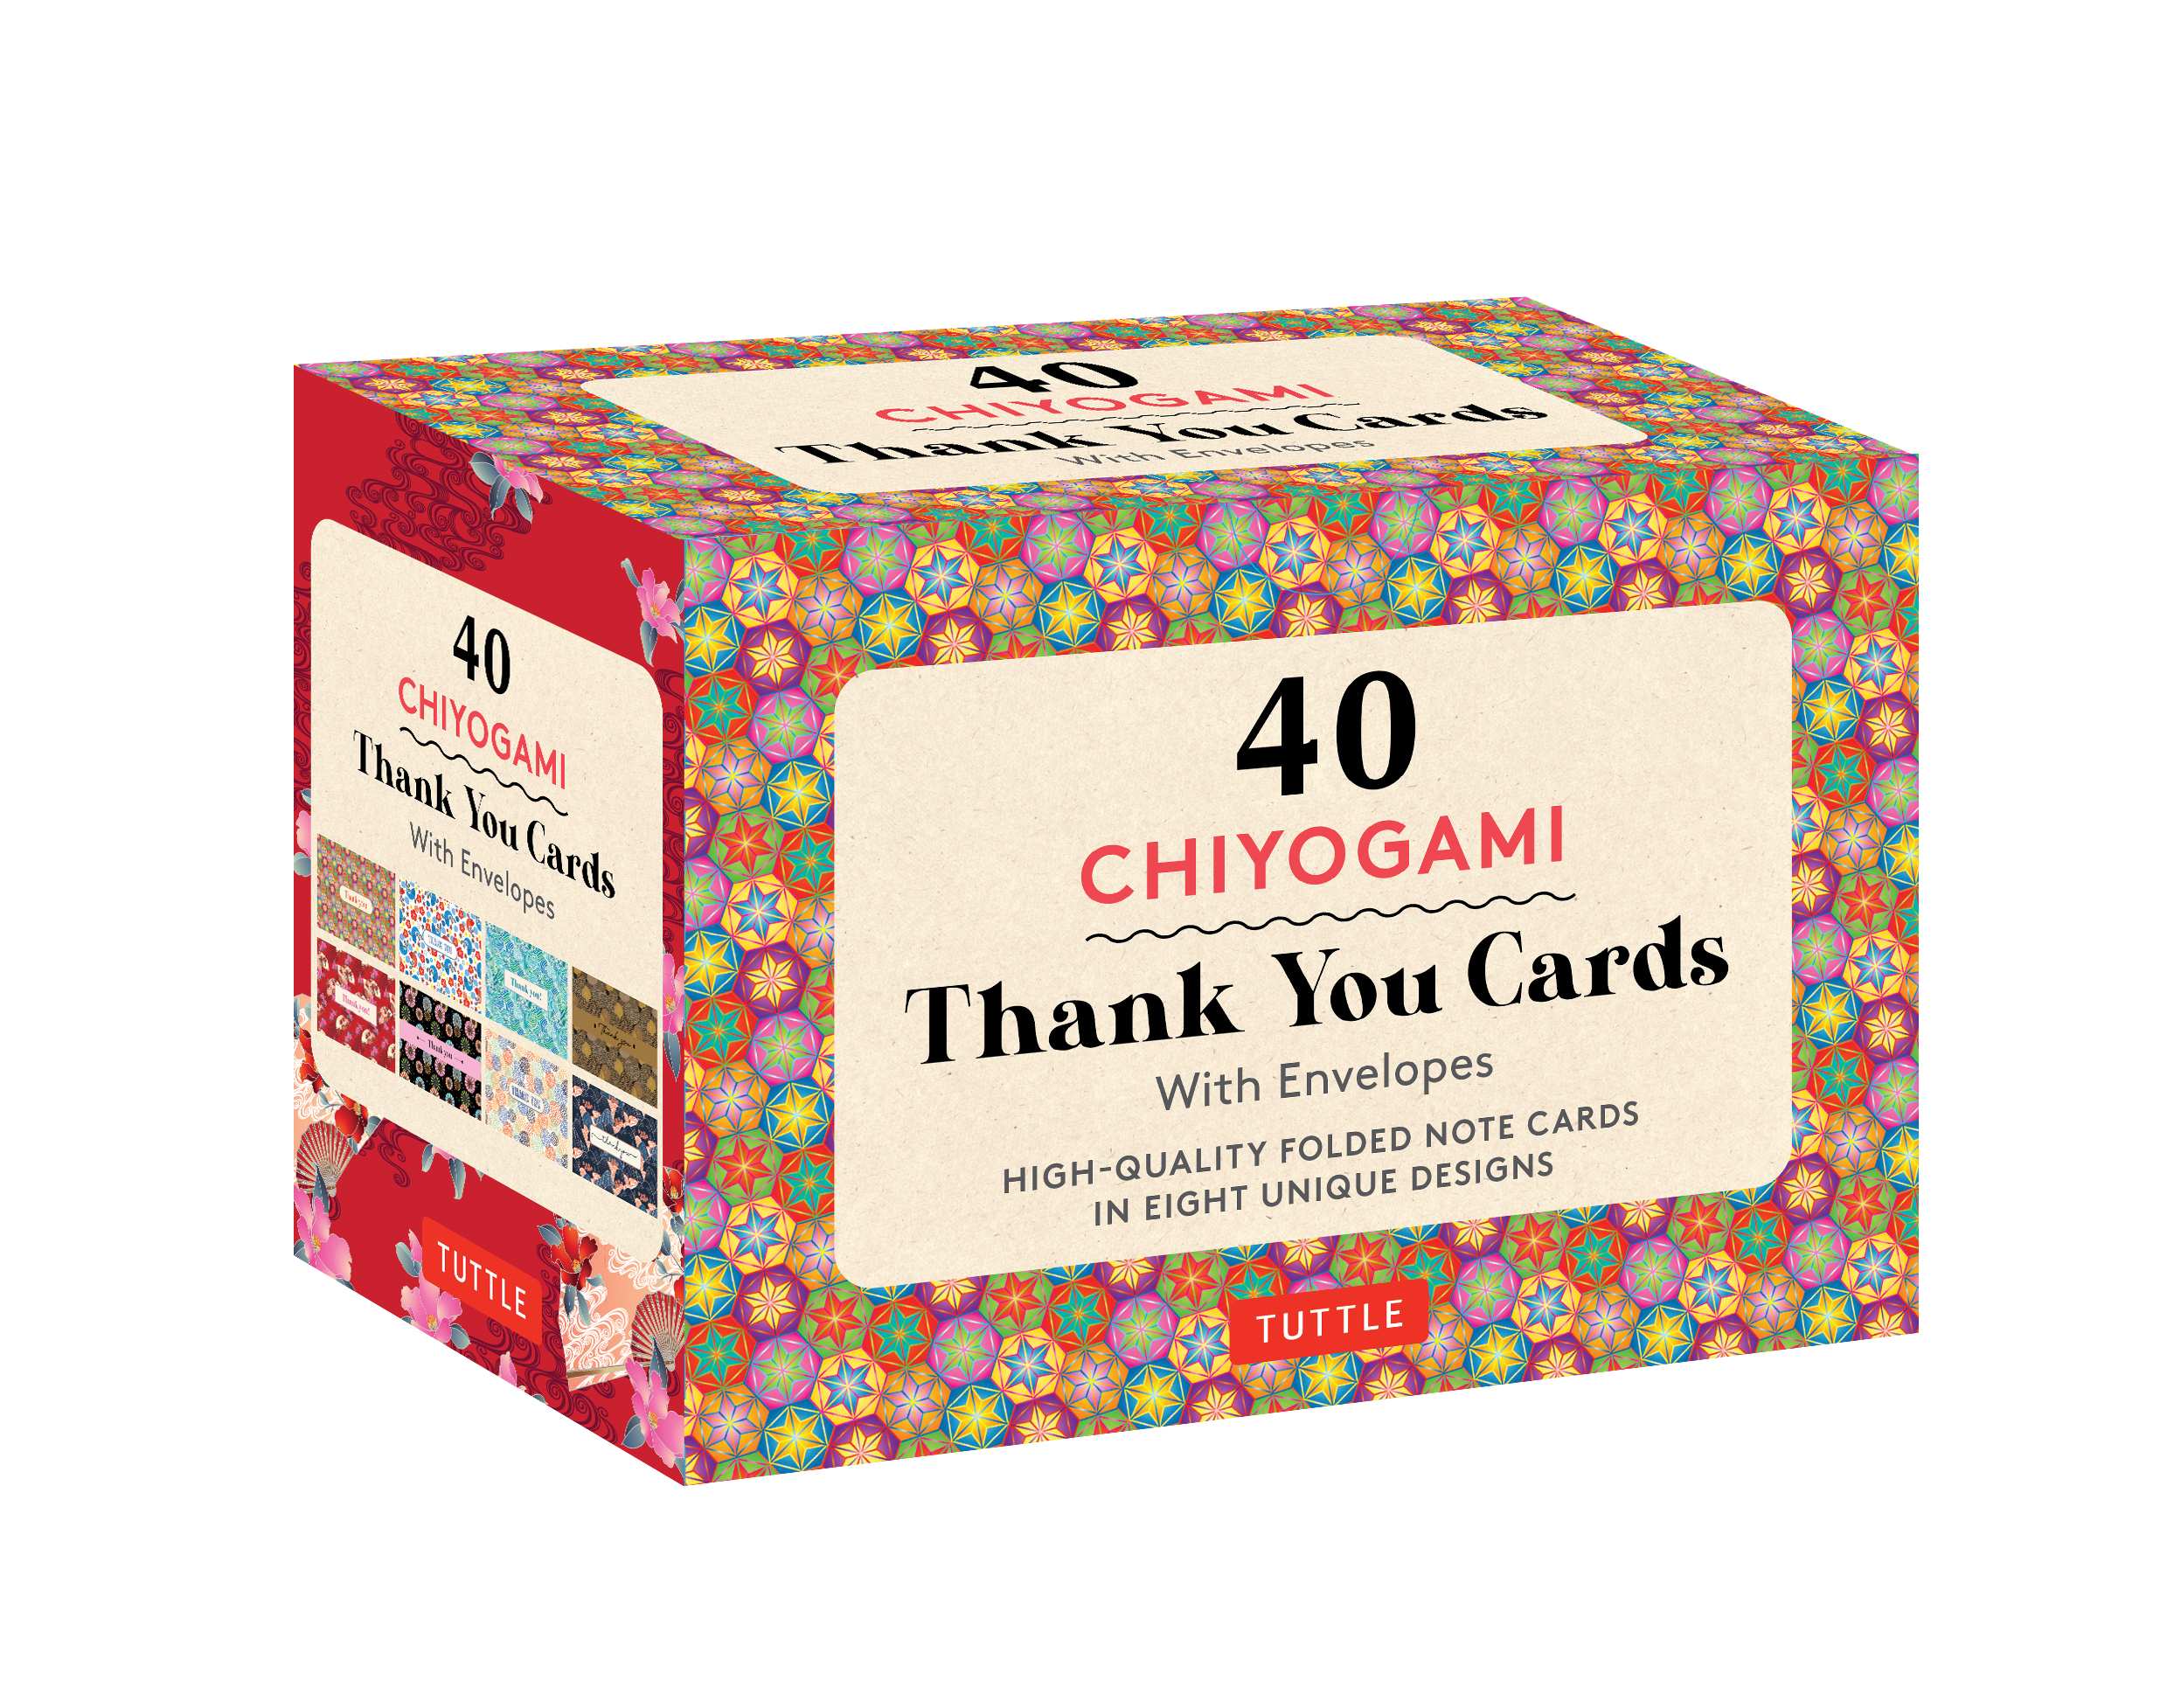 Chiyogami Designs 40 Thank You Cards with Envelopes